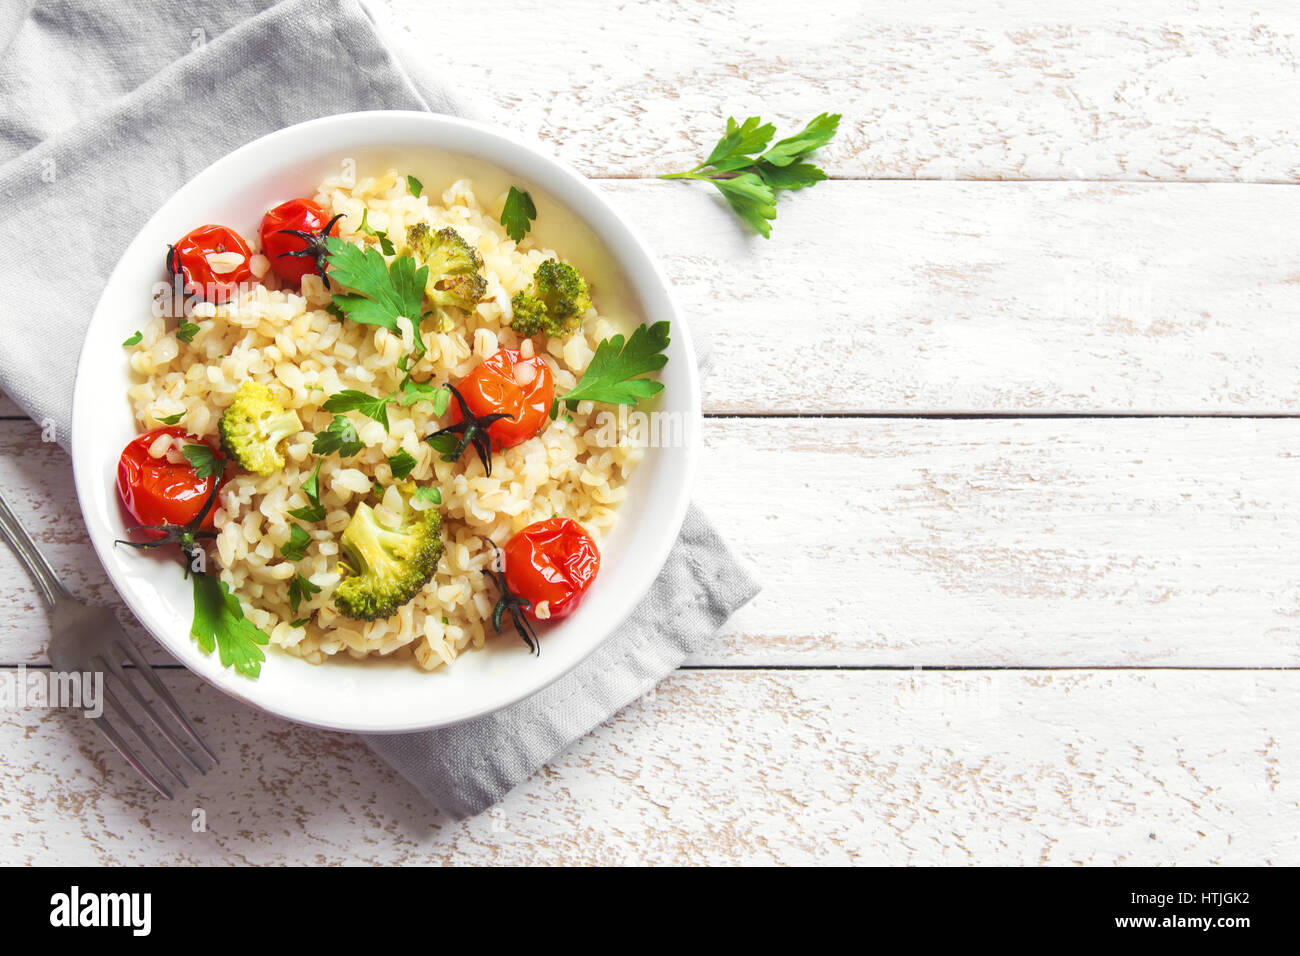 Bulgur with Vegetables: tomatoes, broccoli and parsley on white wooden background - healthy homemade organic vegan Stock Photo